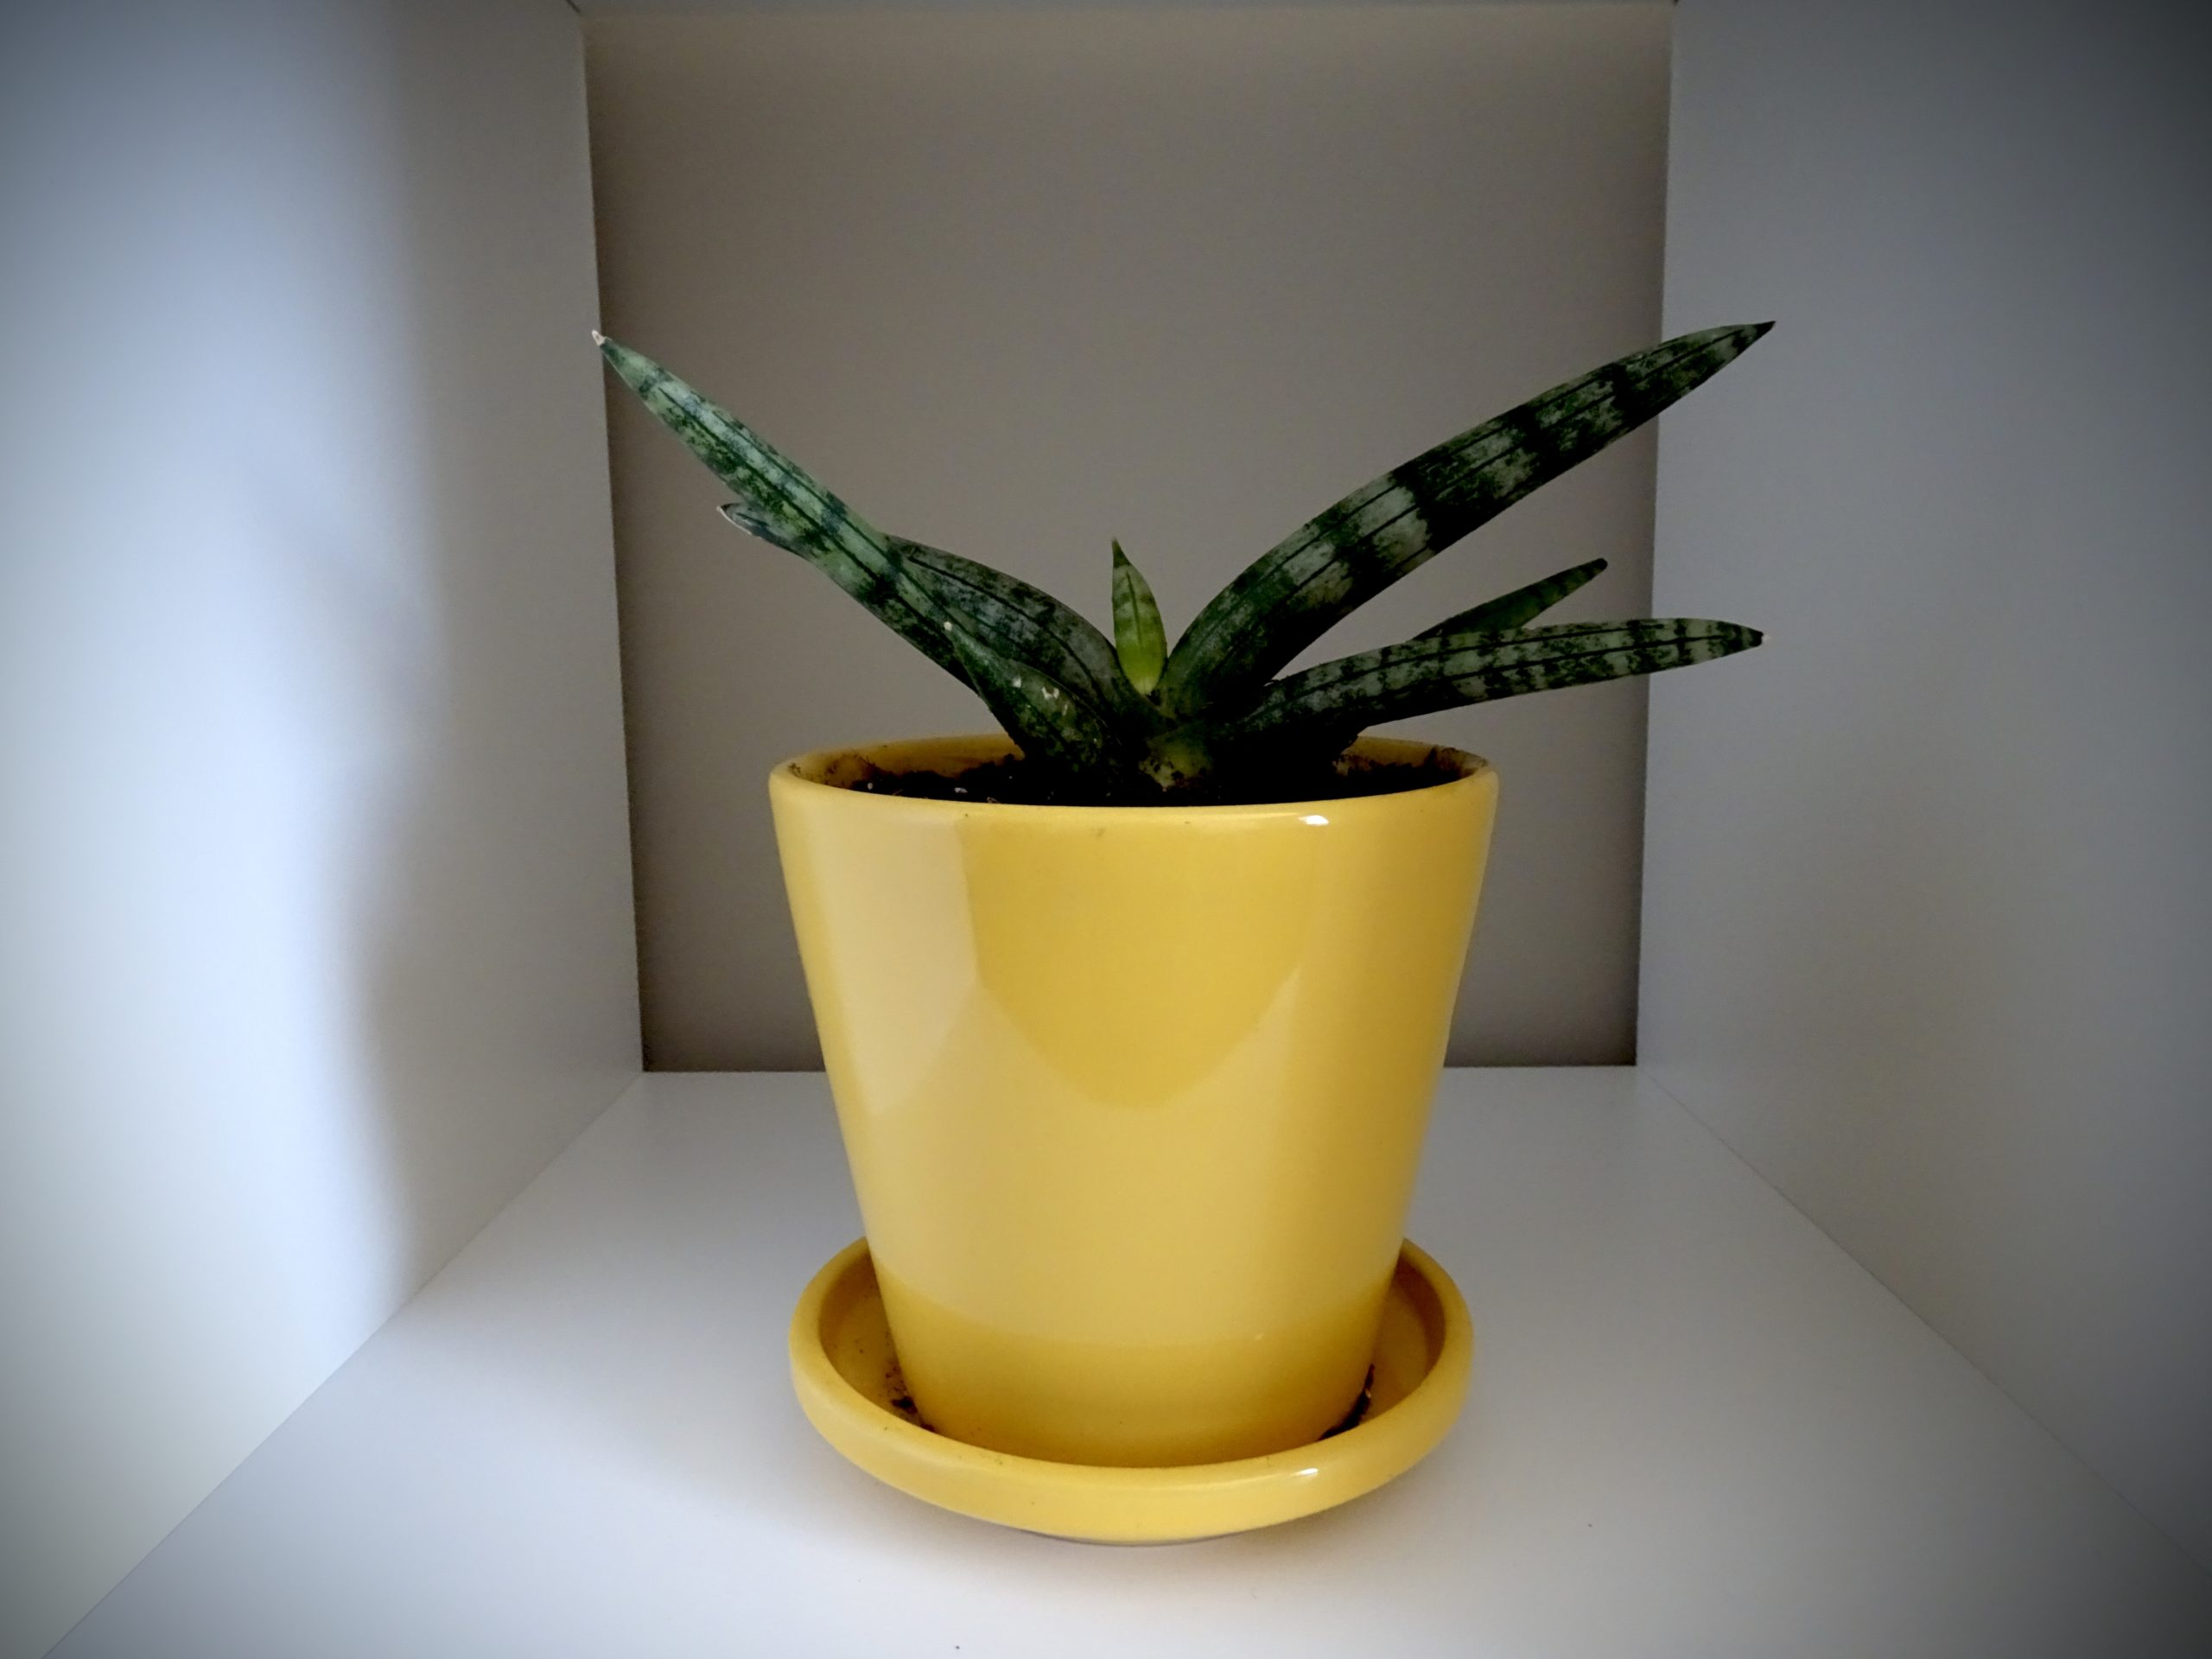 Sarah's pot plant in her home office: Sanseveiria - the snake plant